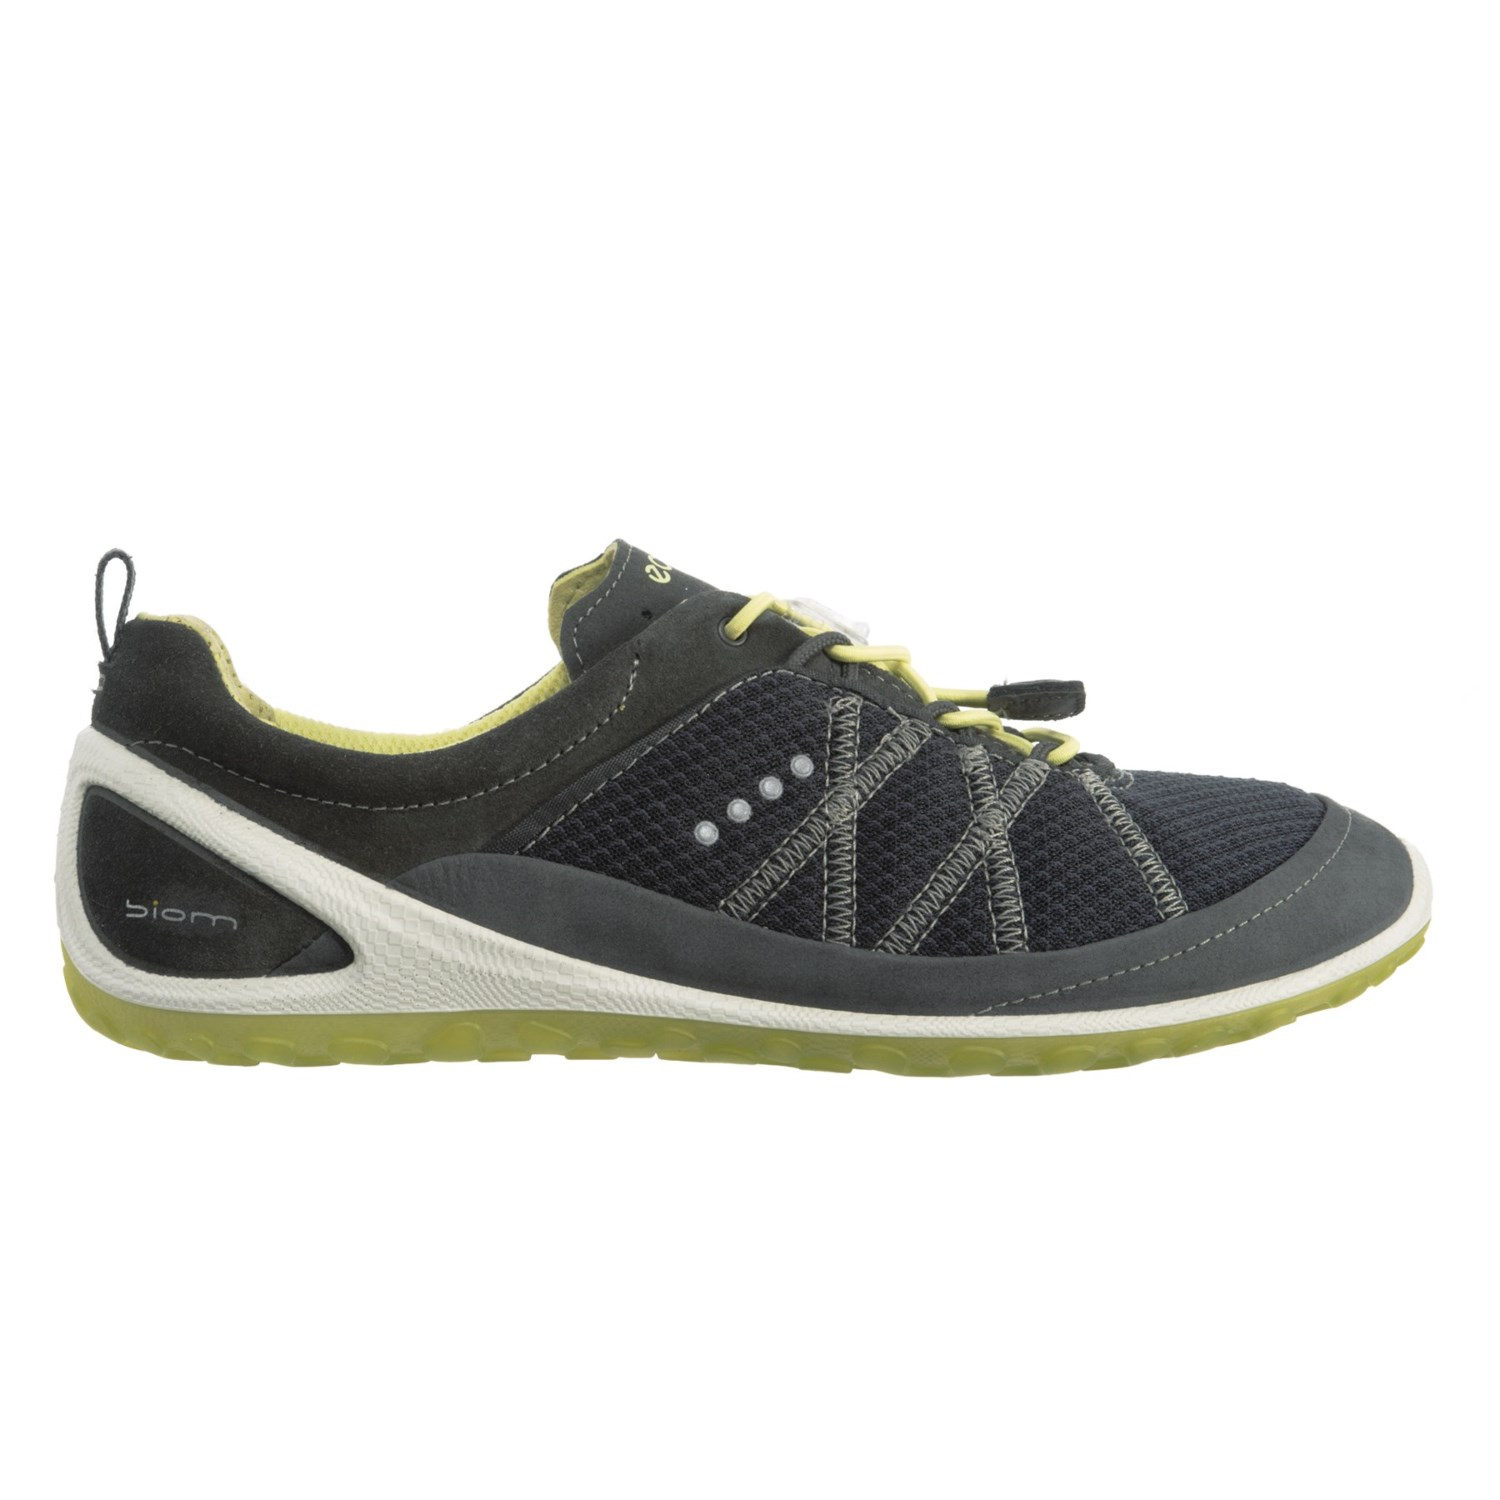 61 Women Save Sneakers Biom Lite Toggle for Ecco xw1zZ04qR